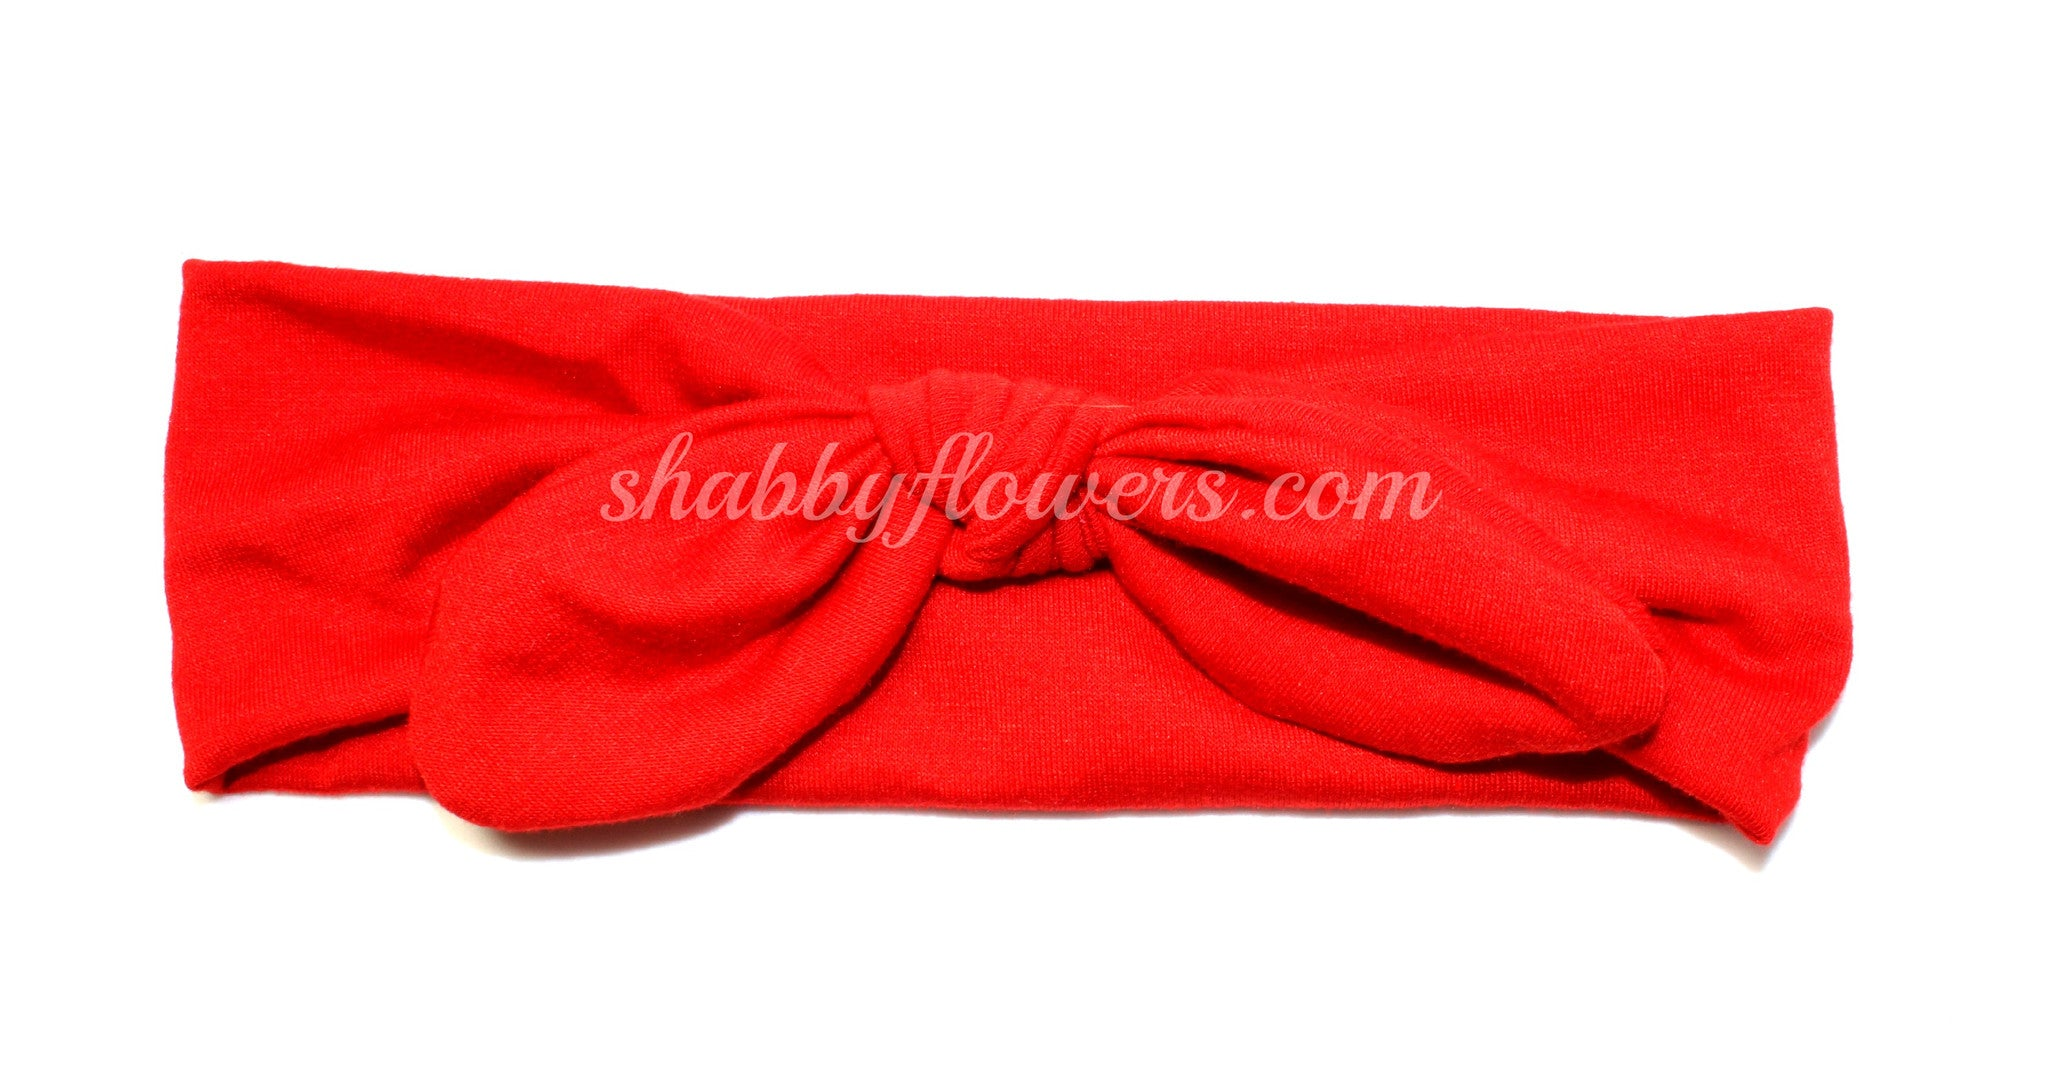 Knot Headband in Red - Regular - shabbyflowers.com